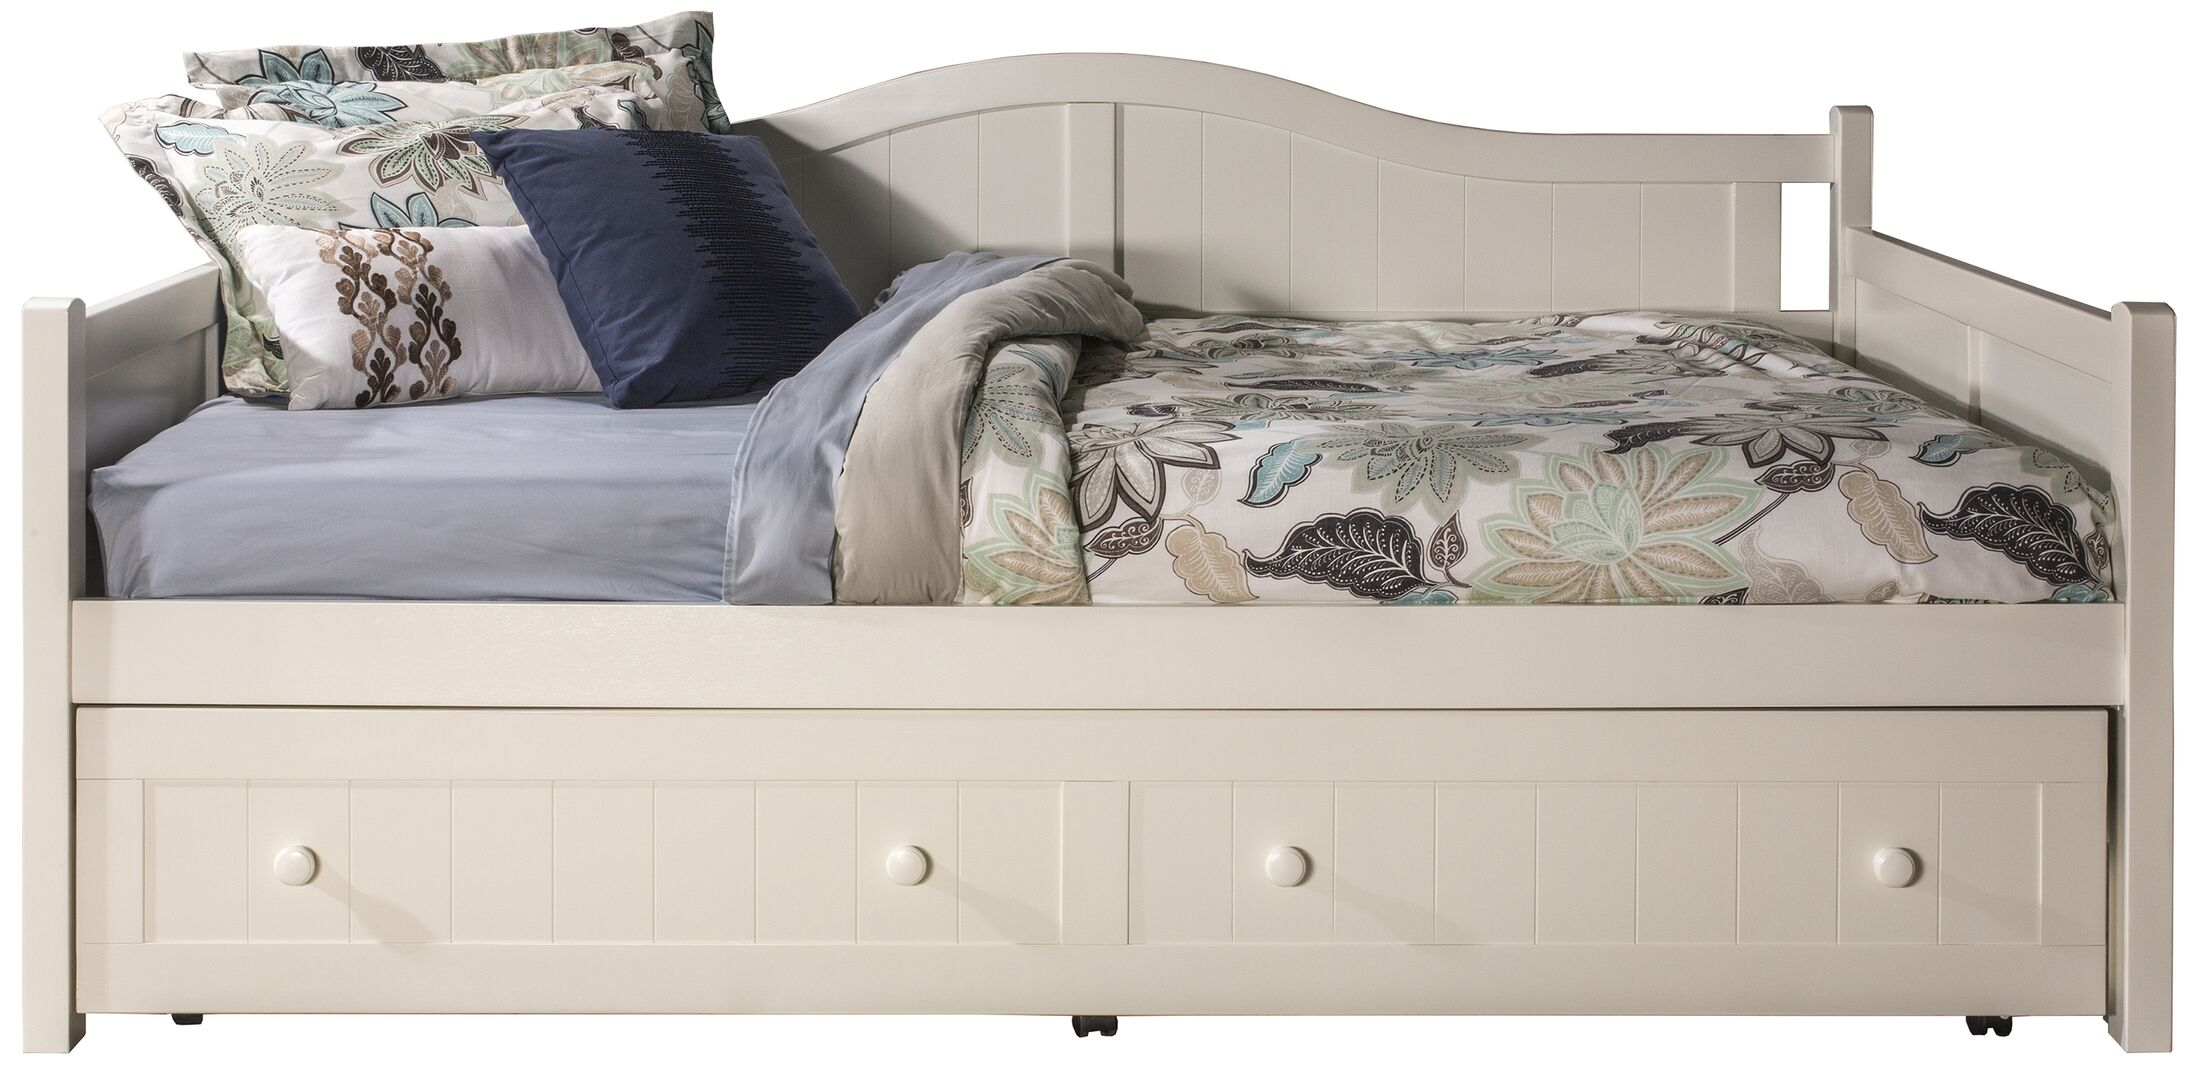 Baptist Daybed Trundle Included